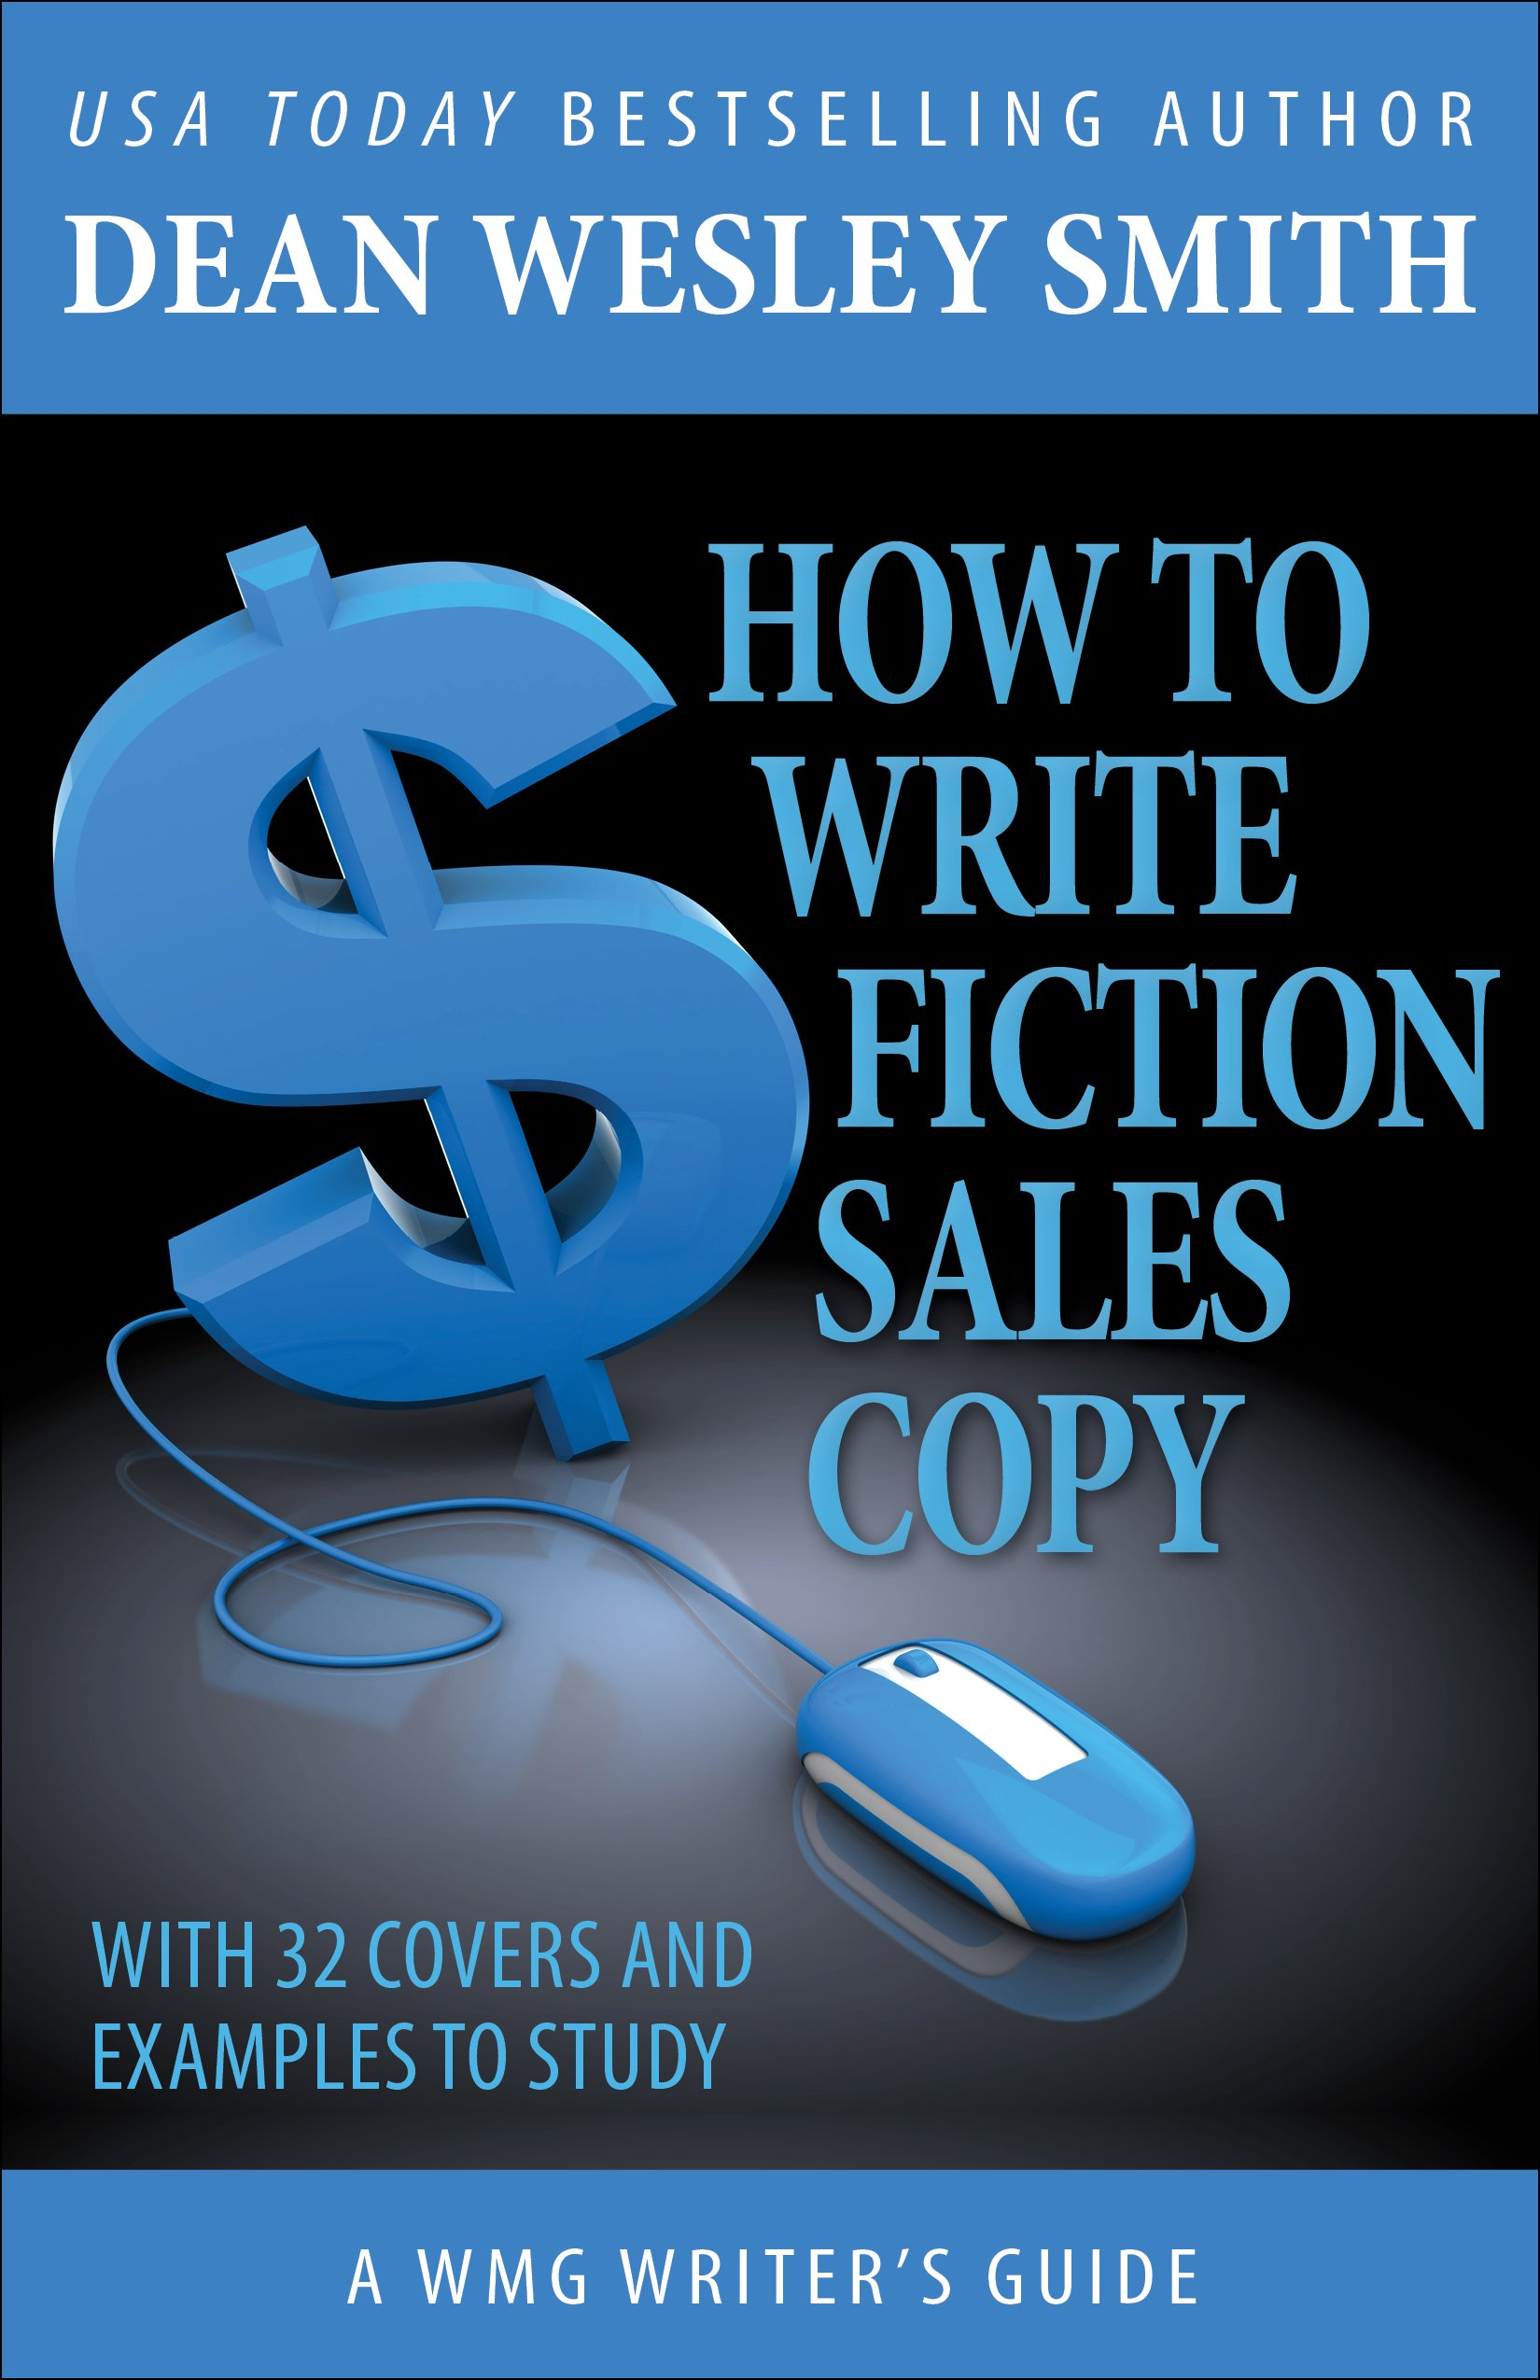 How to Write Fiction Sales Copy (WMG Writer's Guide Book 9)